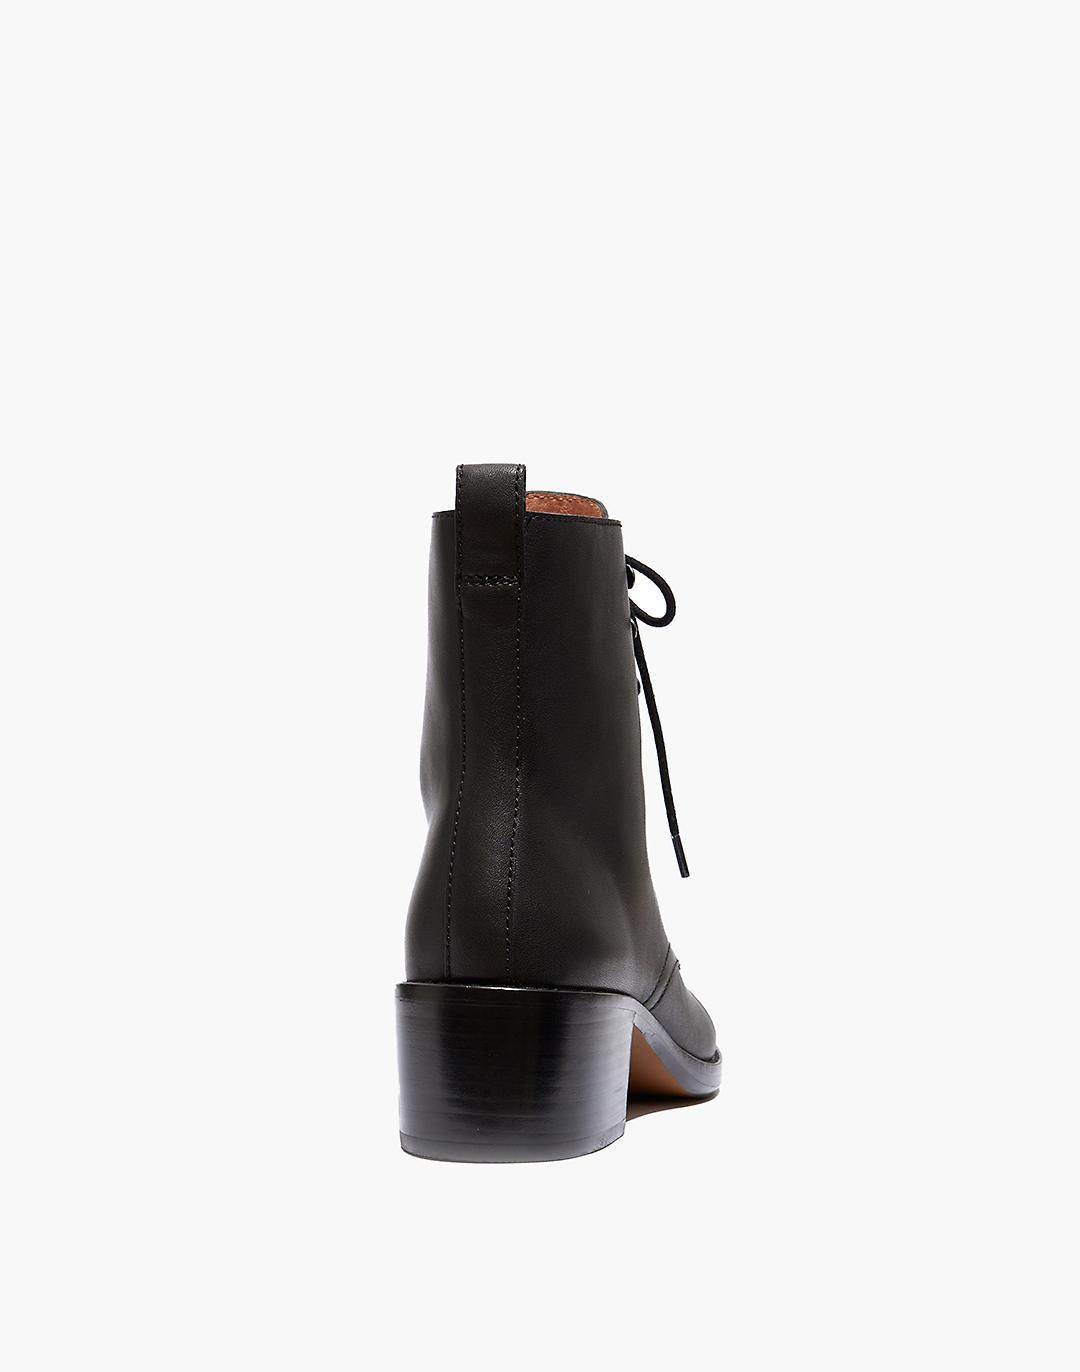 The Patti Lace-Up Boot 2